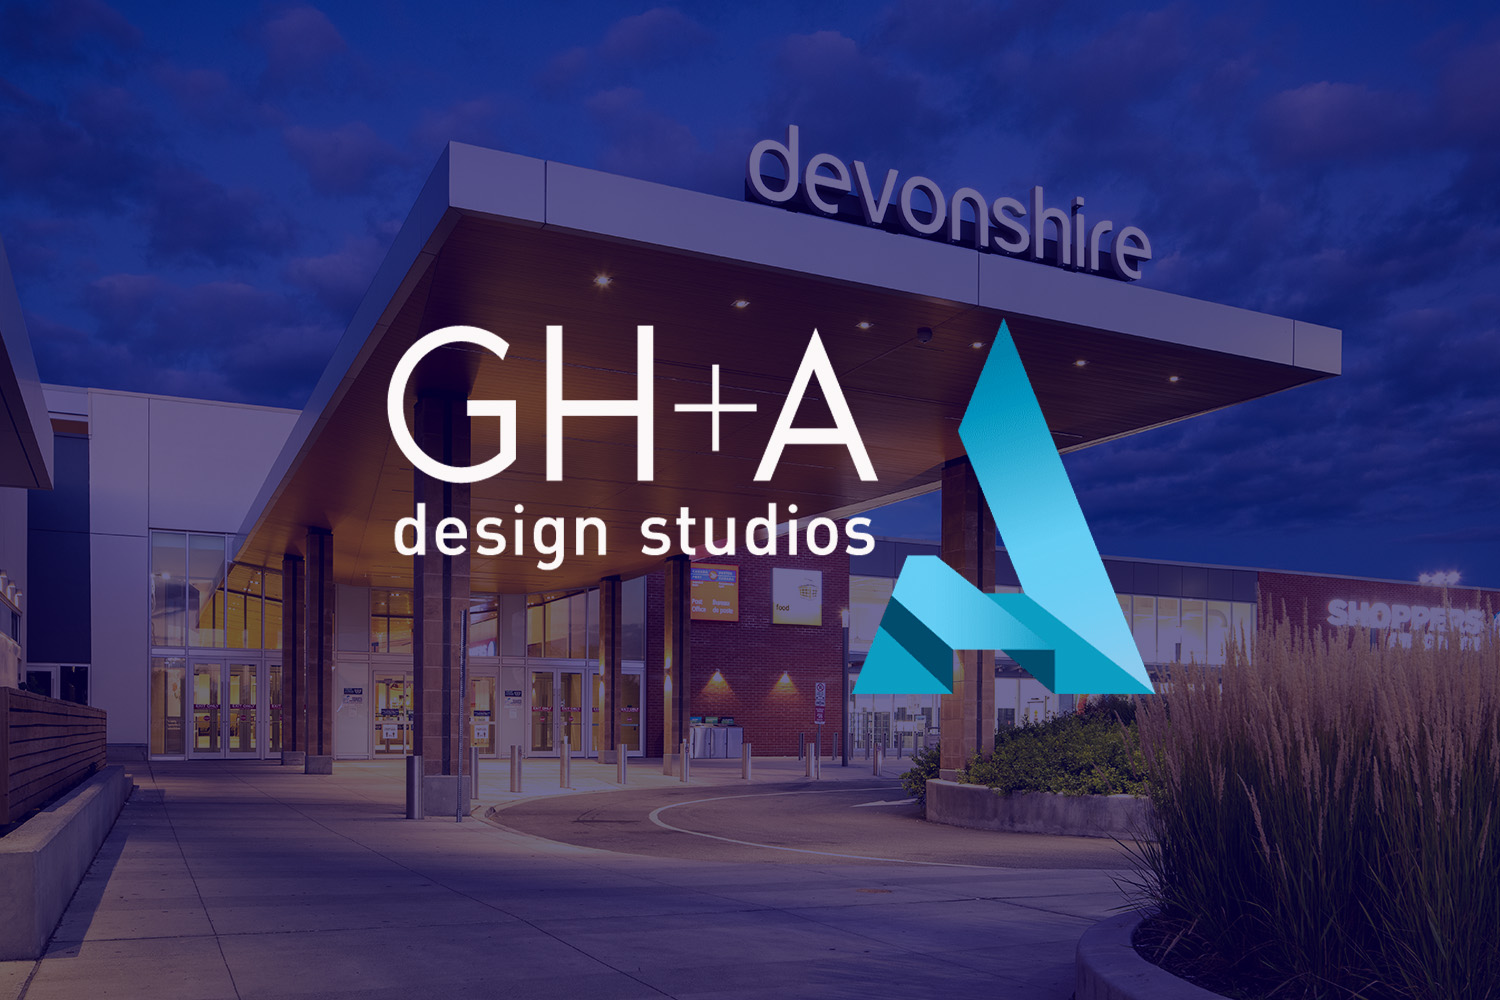 GH+A Design Studios Featured Image